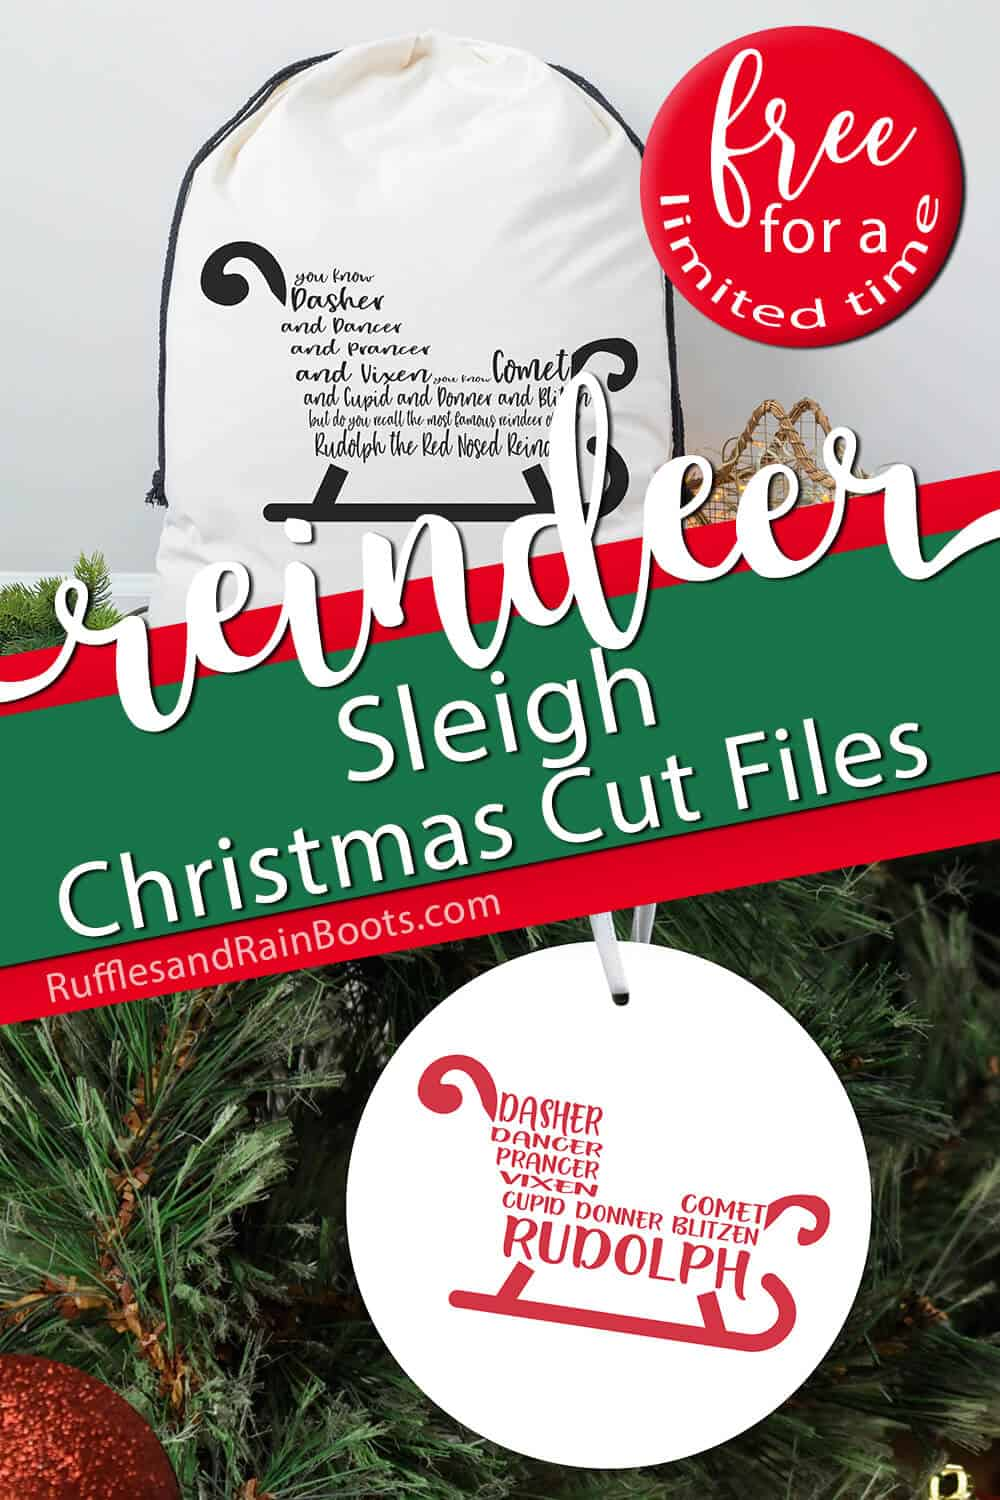 photo collage of rudolph song lyrics free holiday cut files with text which reads reindeer sleigh christmas cut files free for a limited time